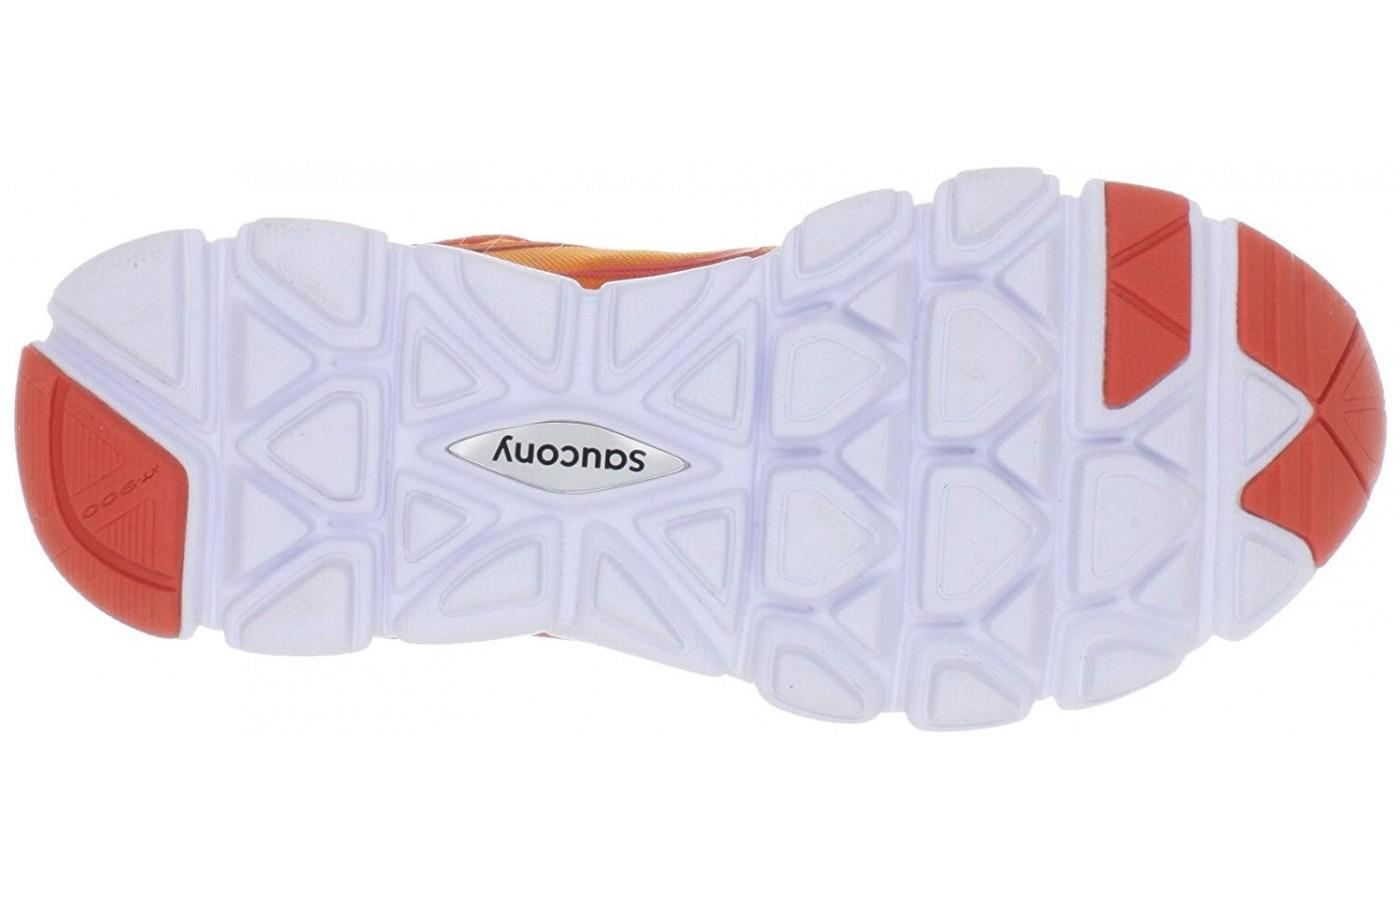 the forefoot and heel of the outsole of the Saucony Virrata is covered with reinforced rubber